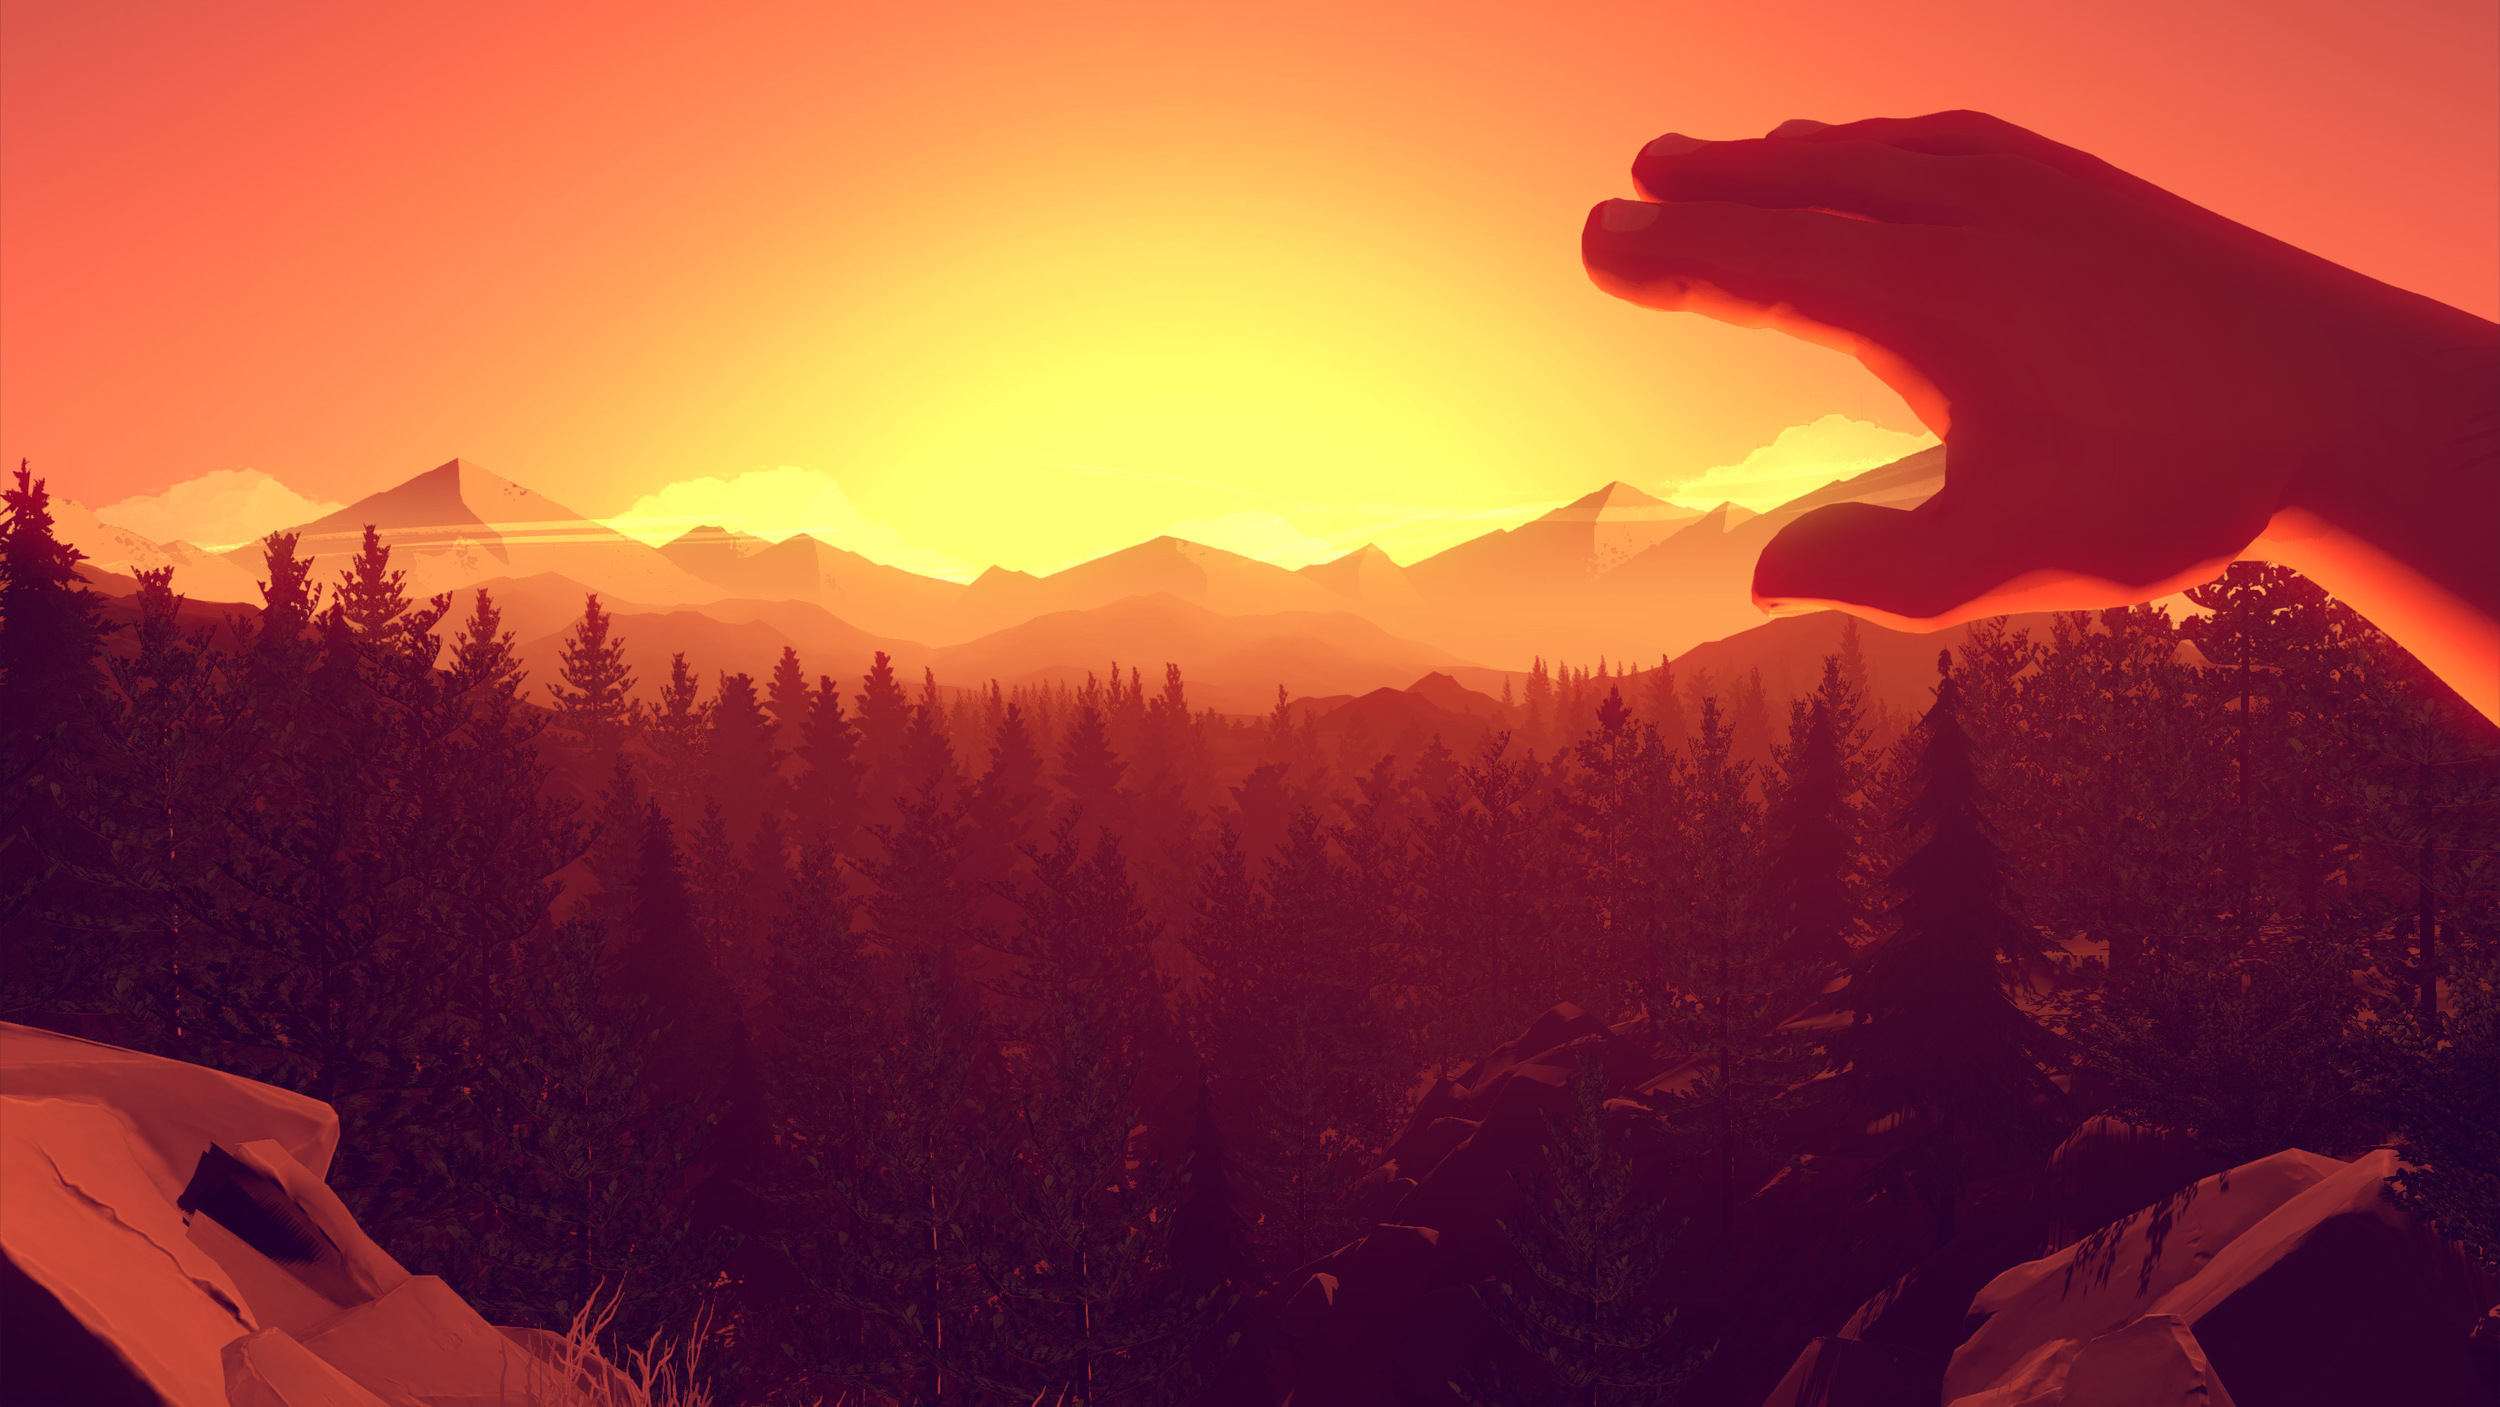 Screenshot from Firewatch